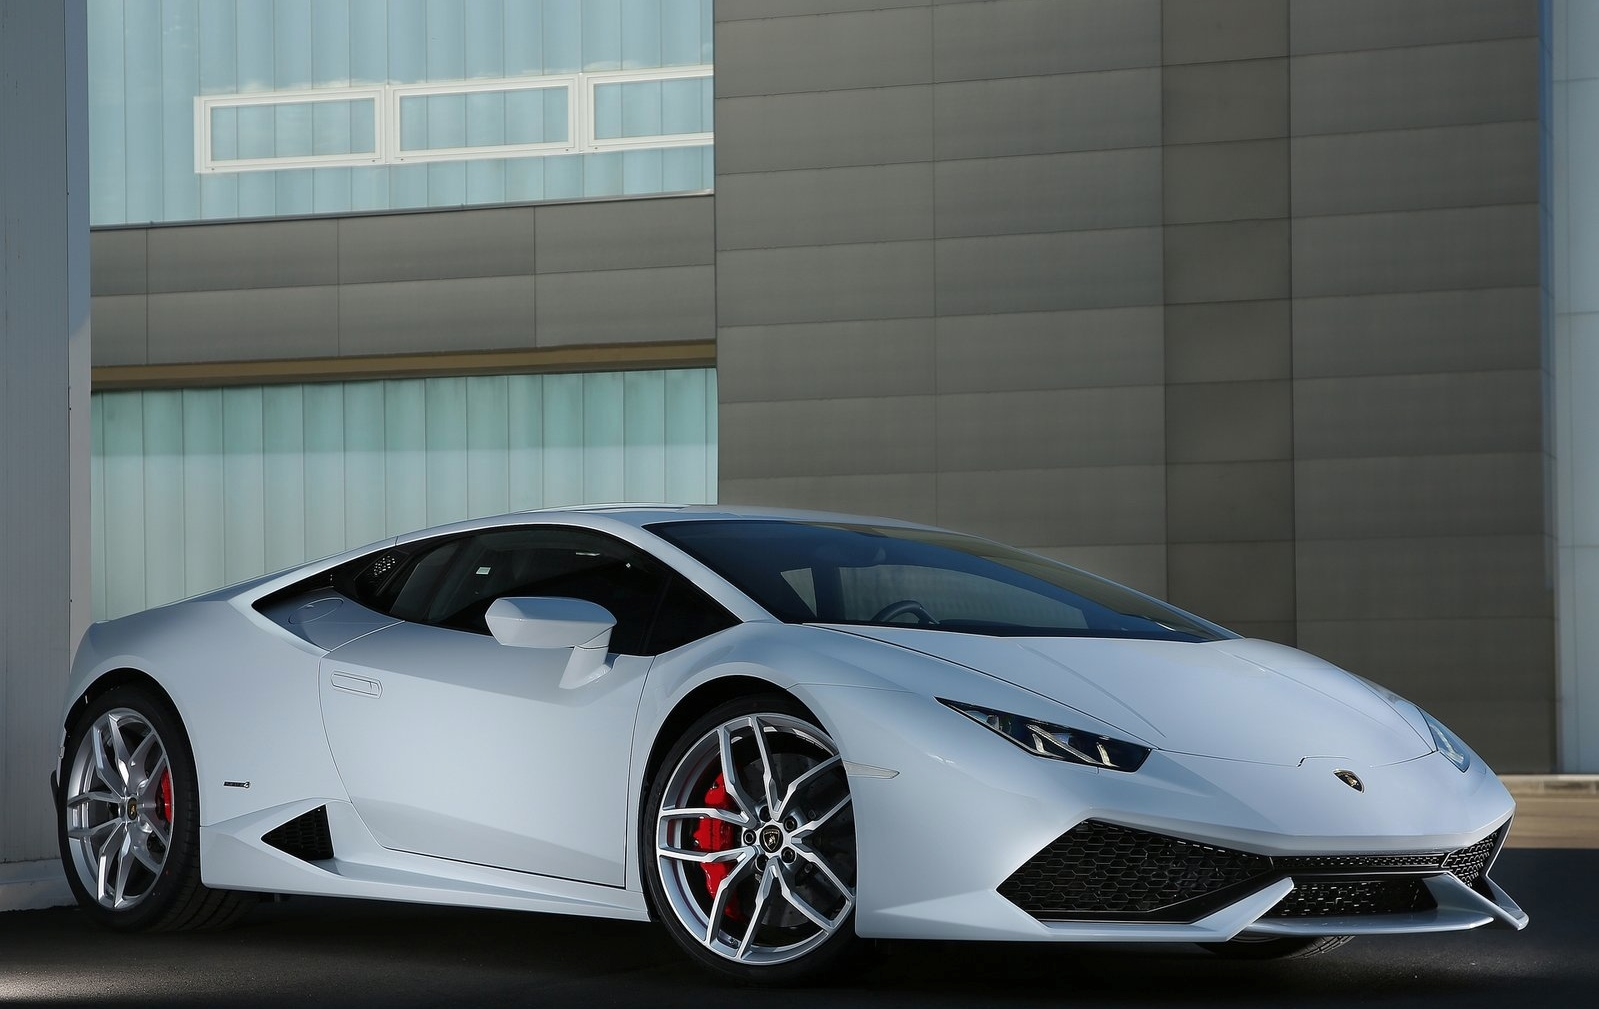 Lamborghini Explains Why It Will Not Offer A Hybrid